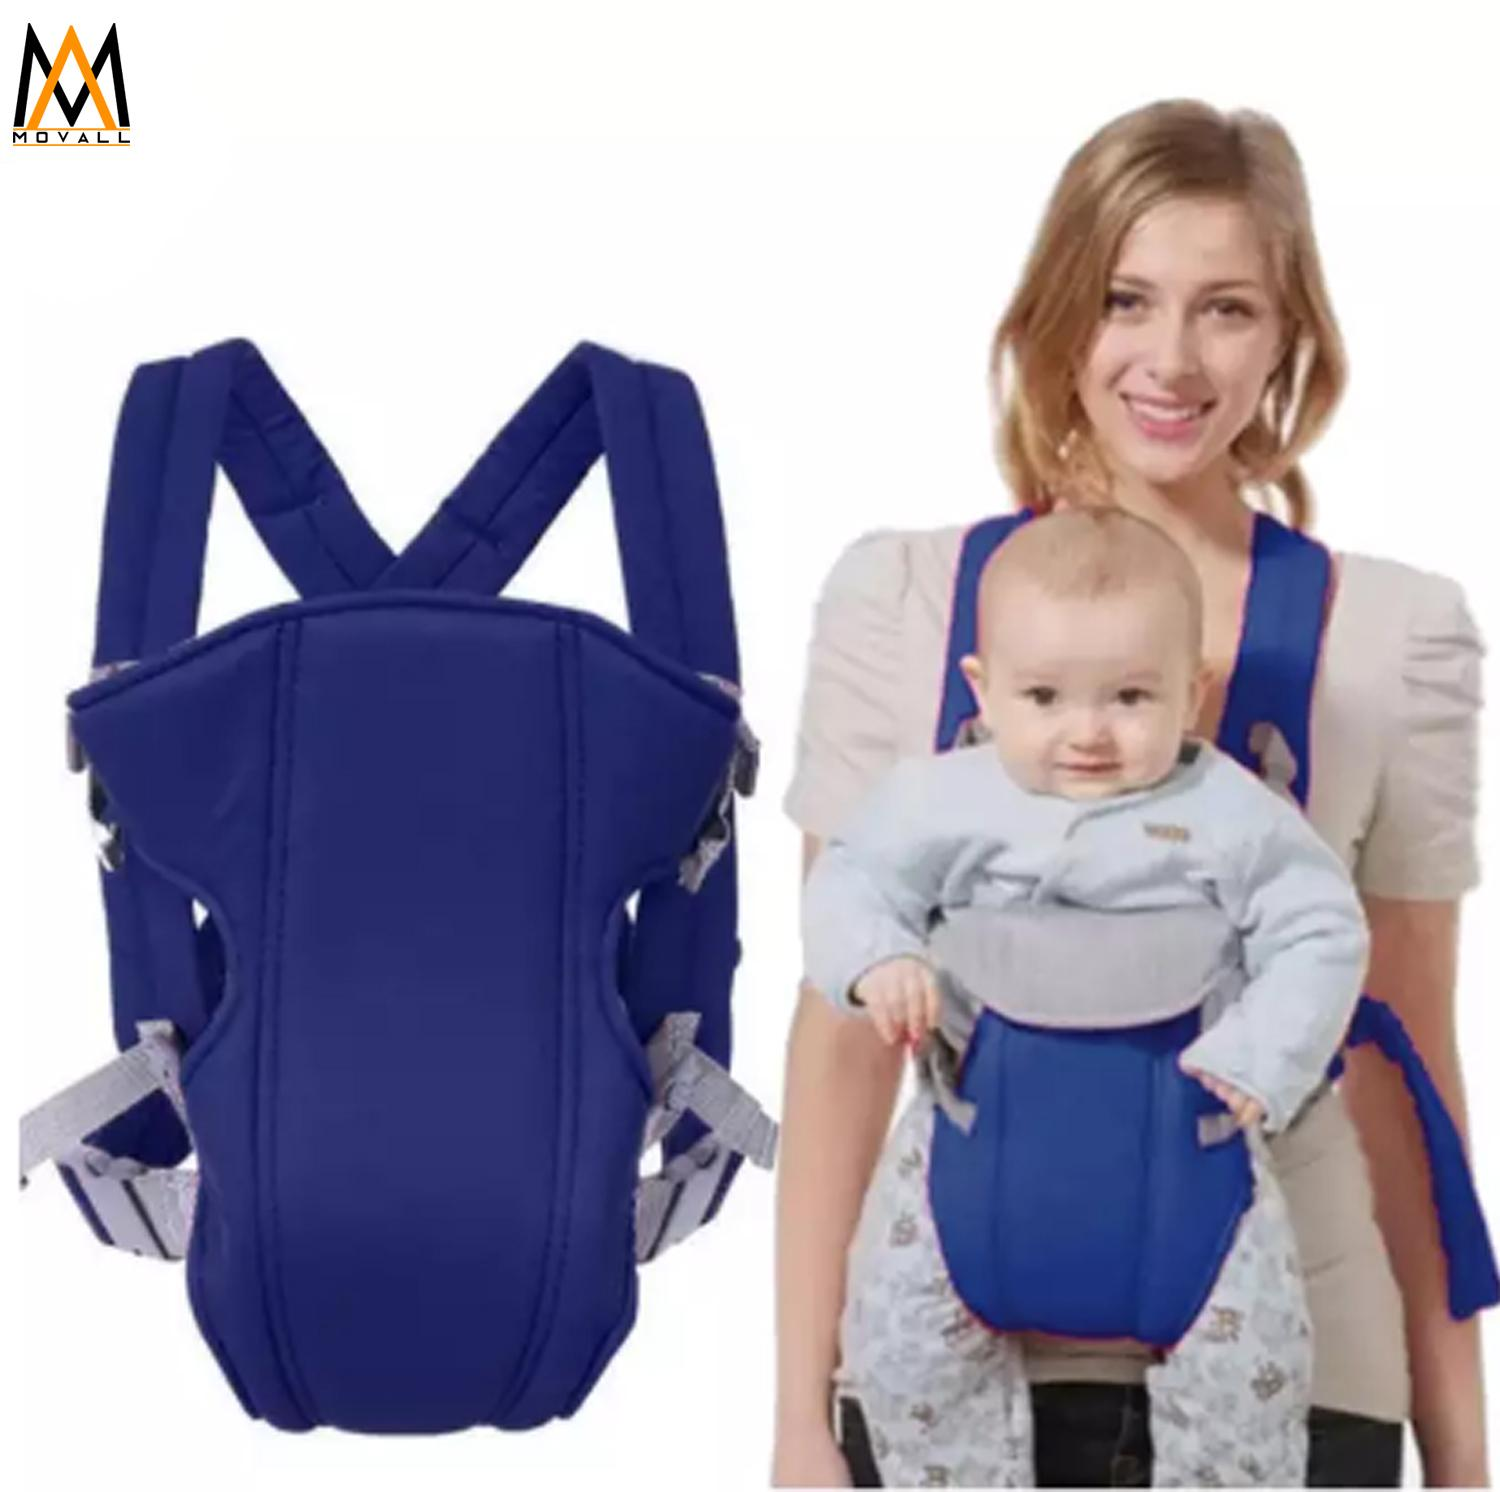 baby gear for sale - baby travel gear online brands, prices